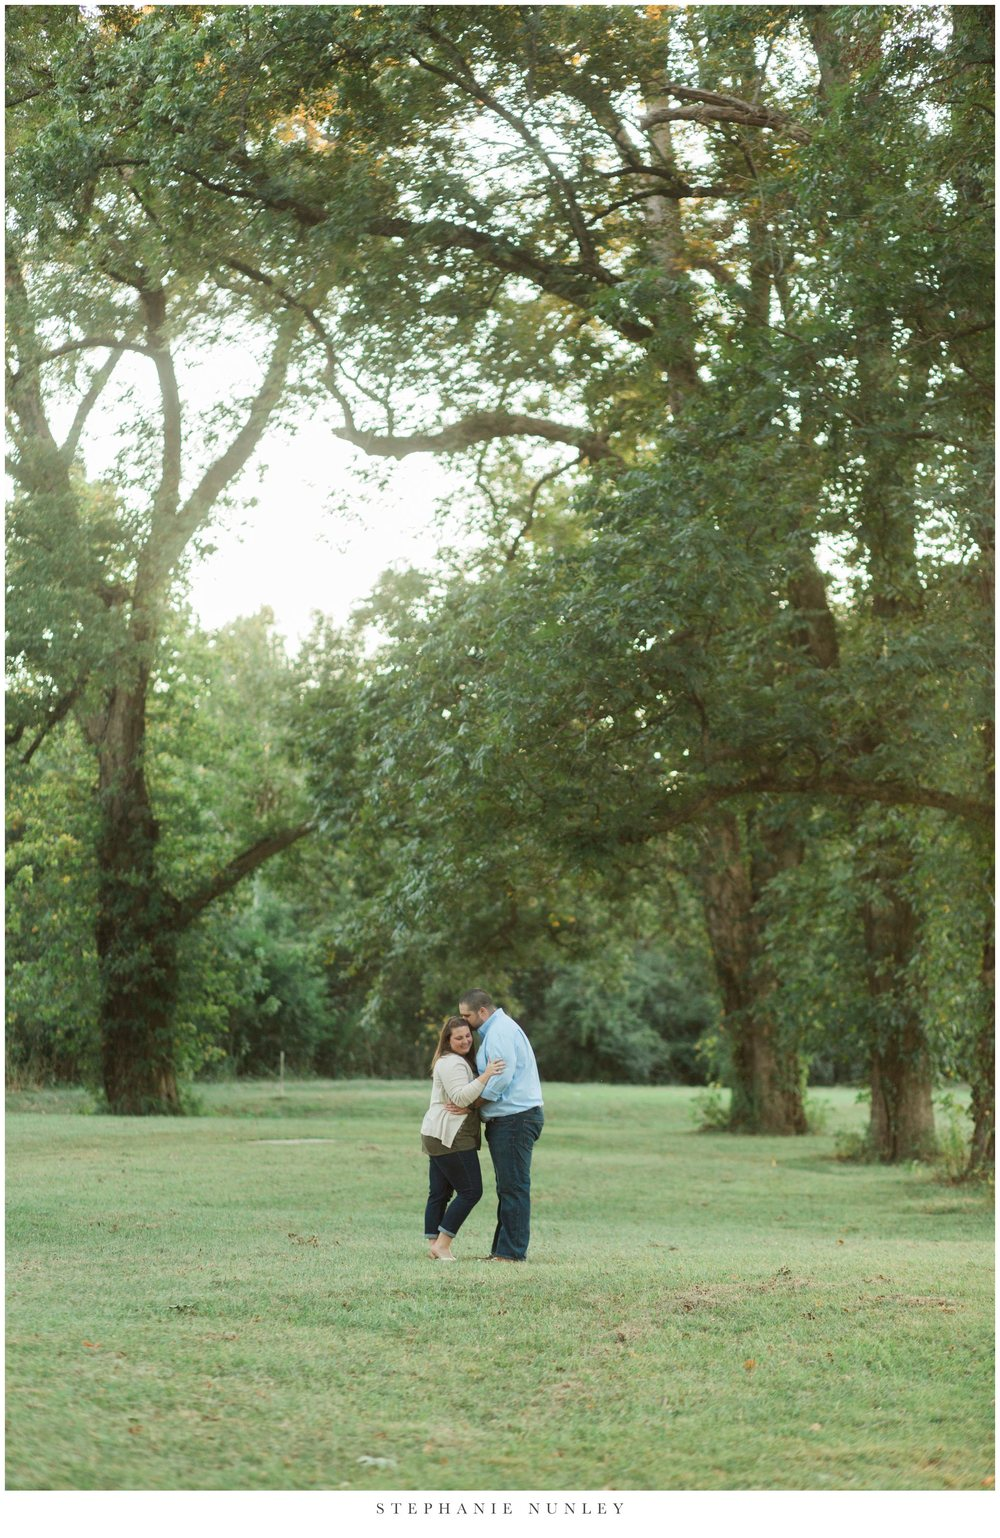 classic-engagement-session-in-a-field-0015.jpg